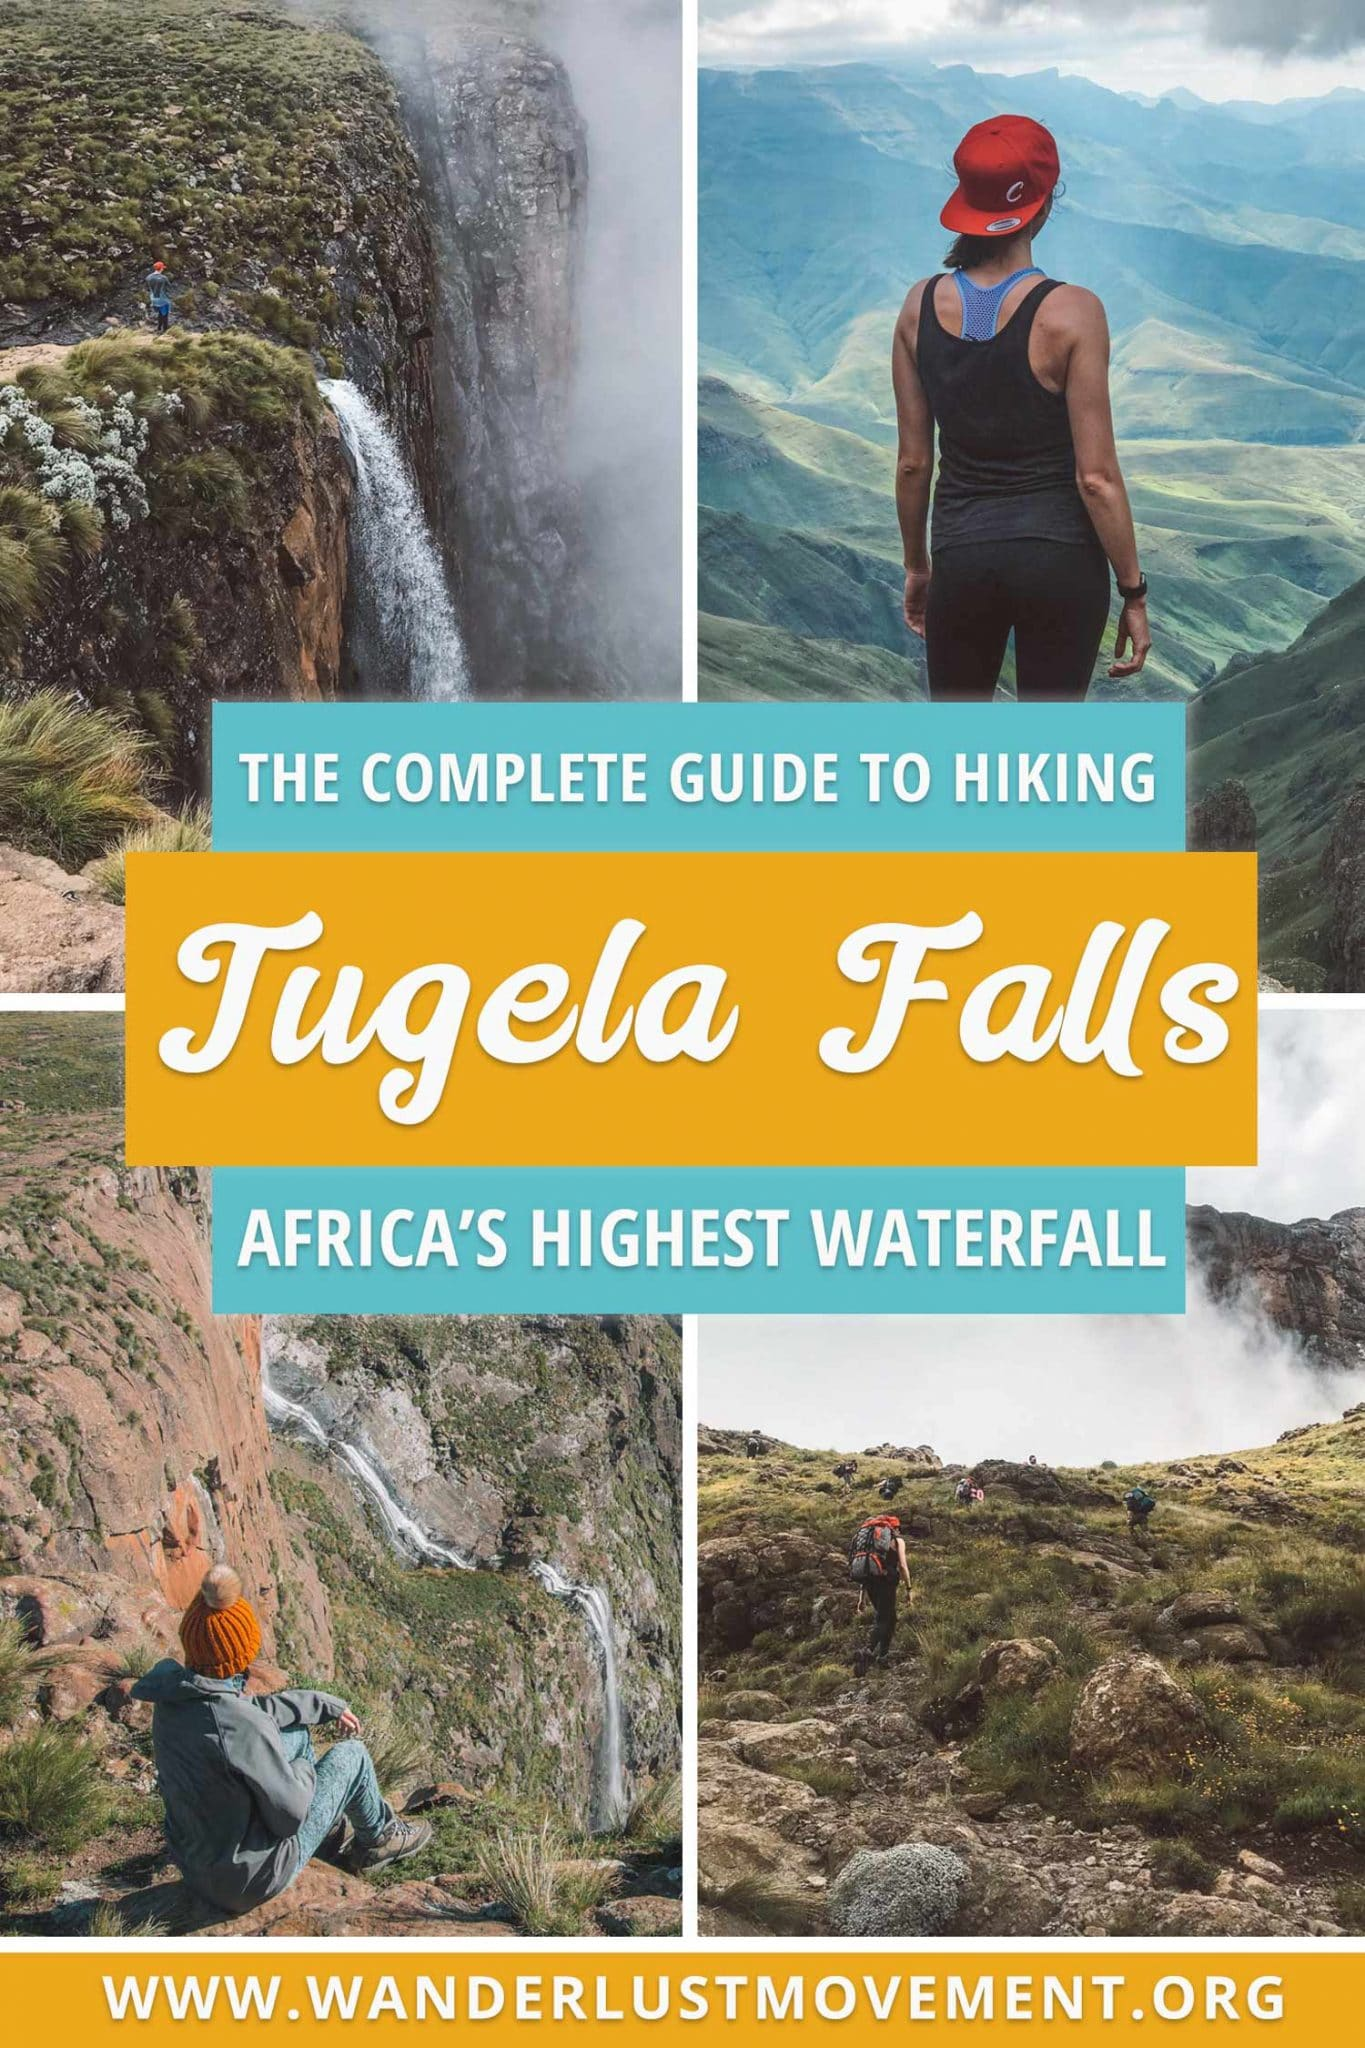 Hiking Tugela Falls: Africa's Highest Waterfall